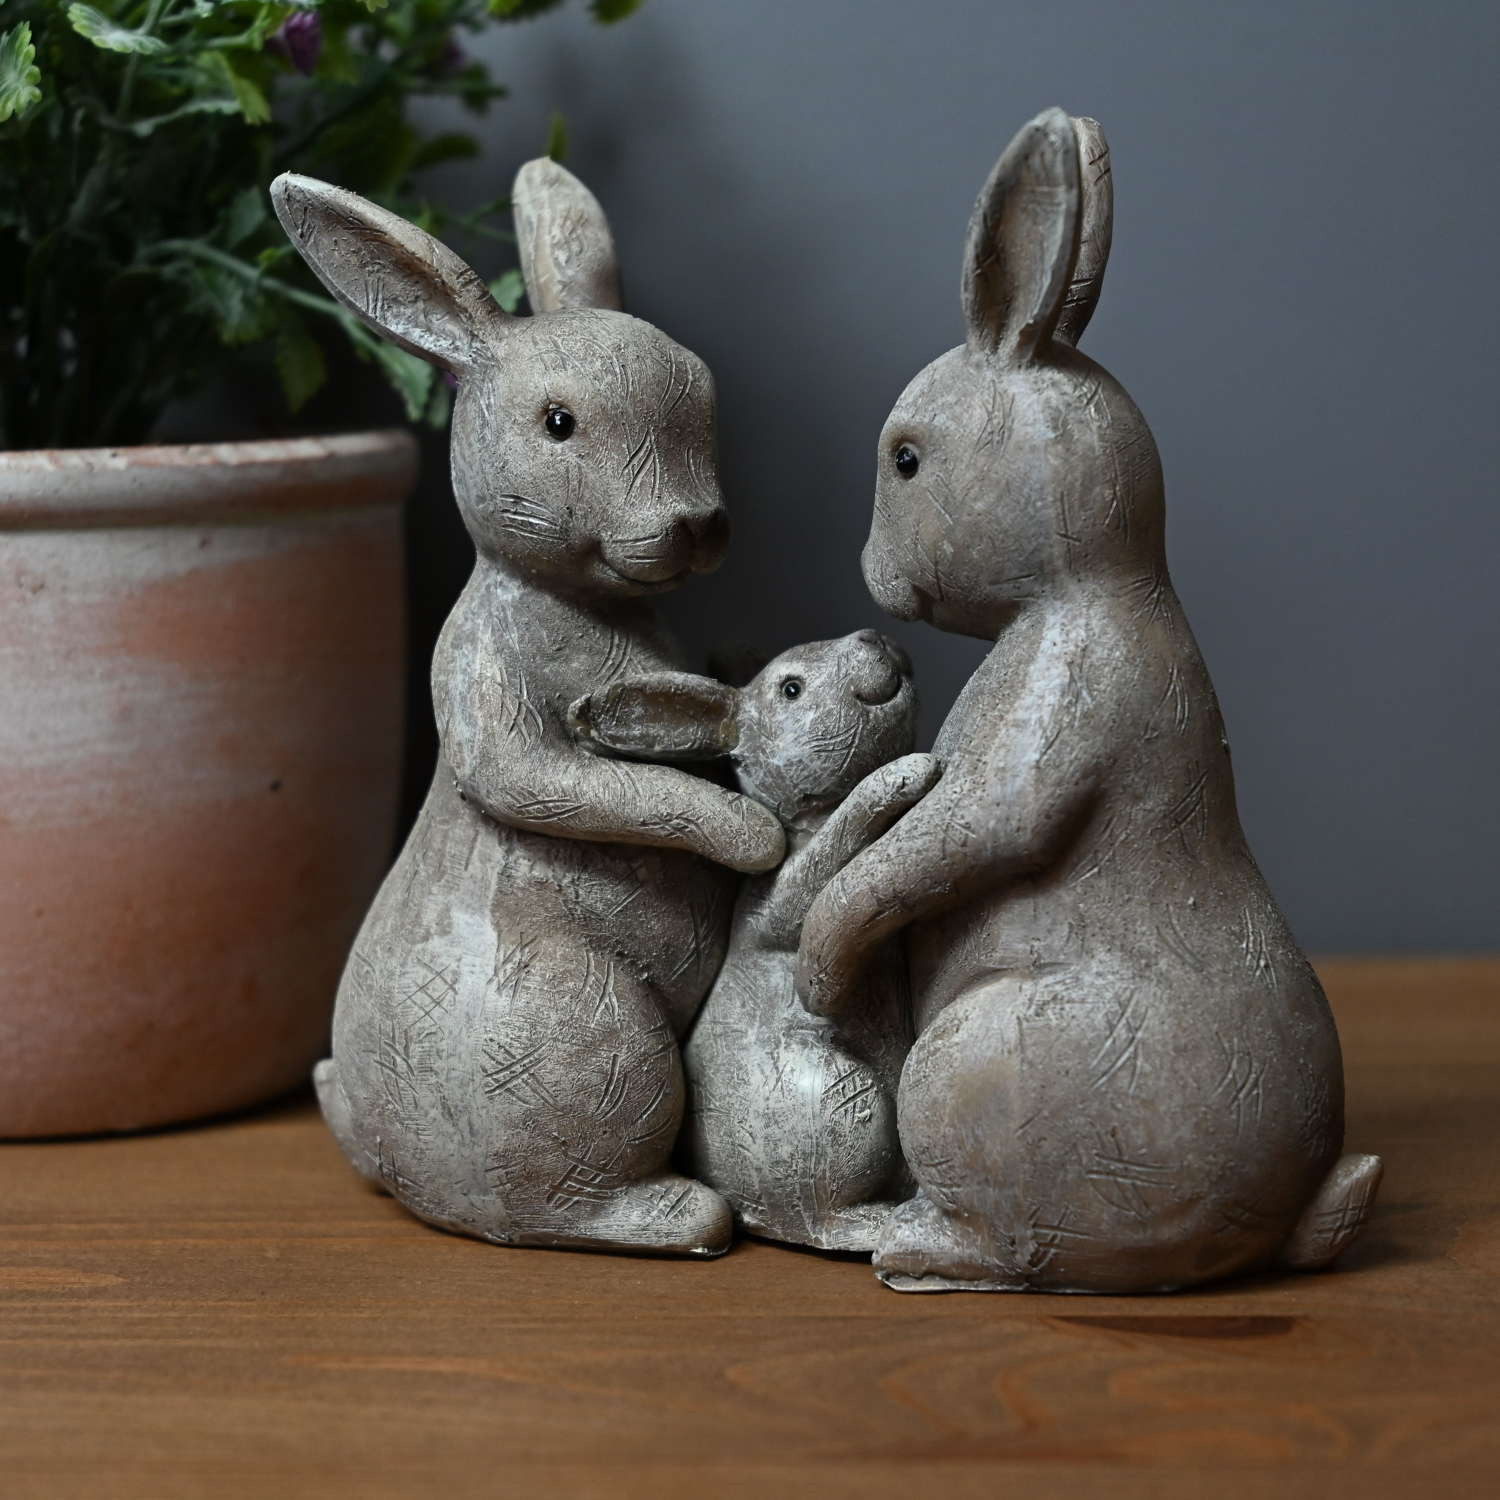 Rabbit Family ornament